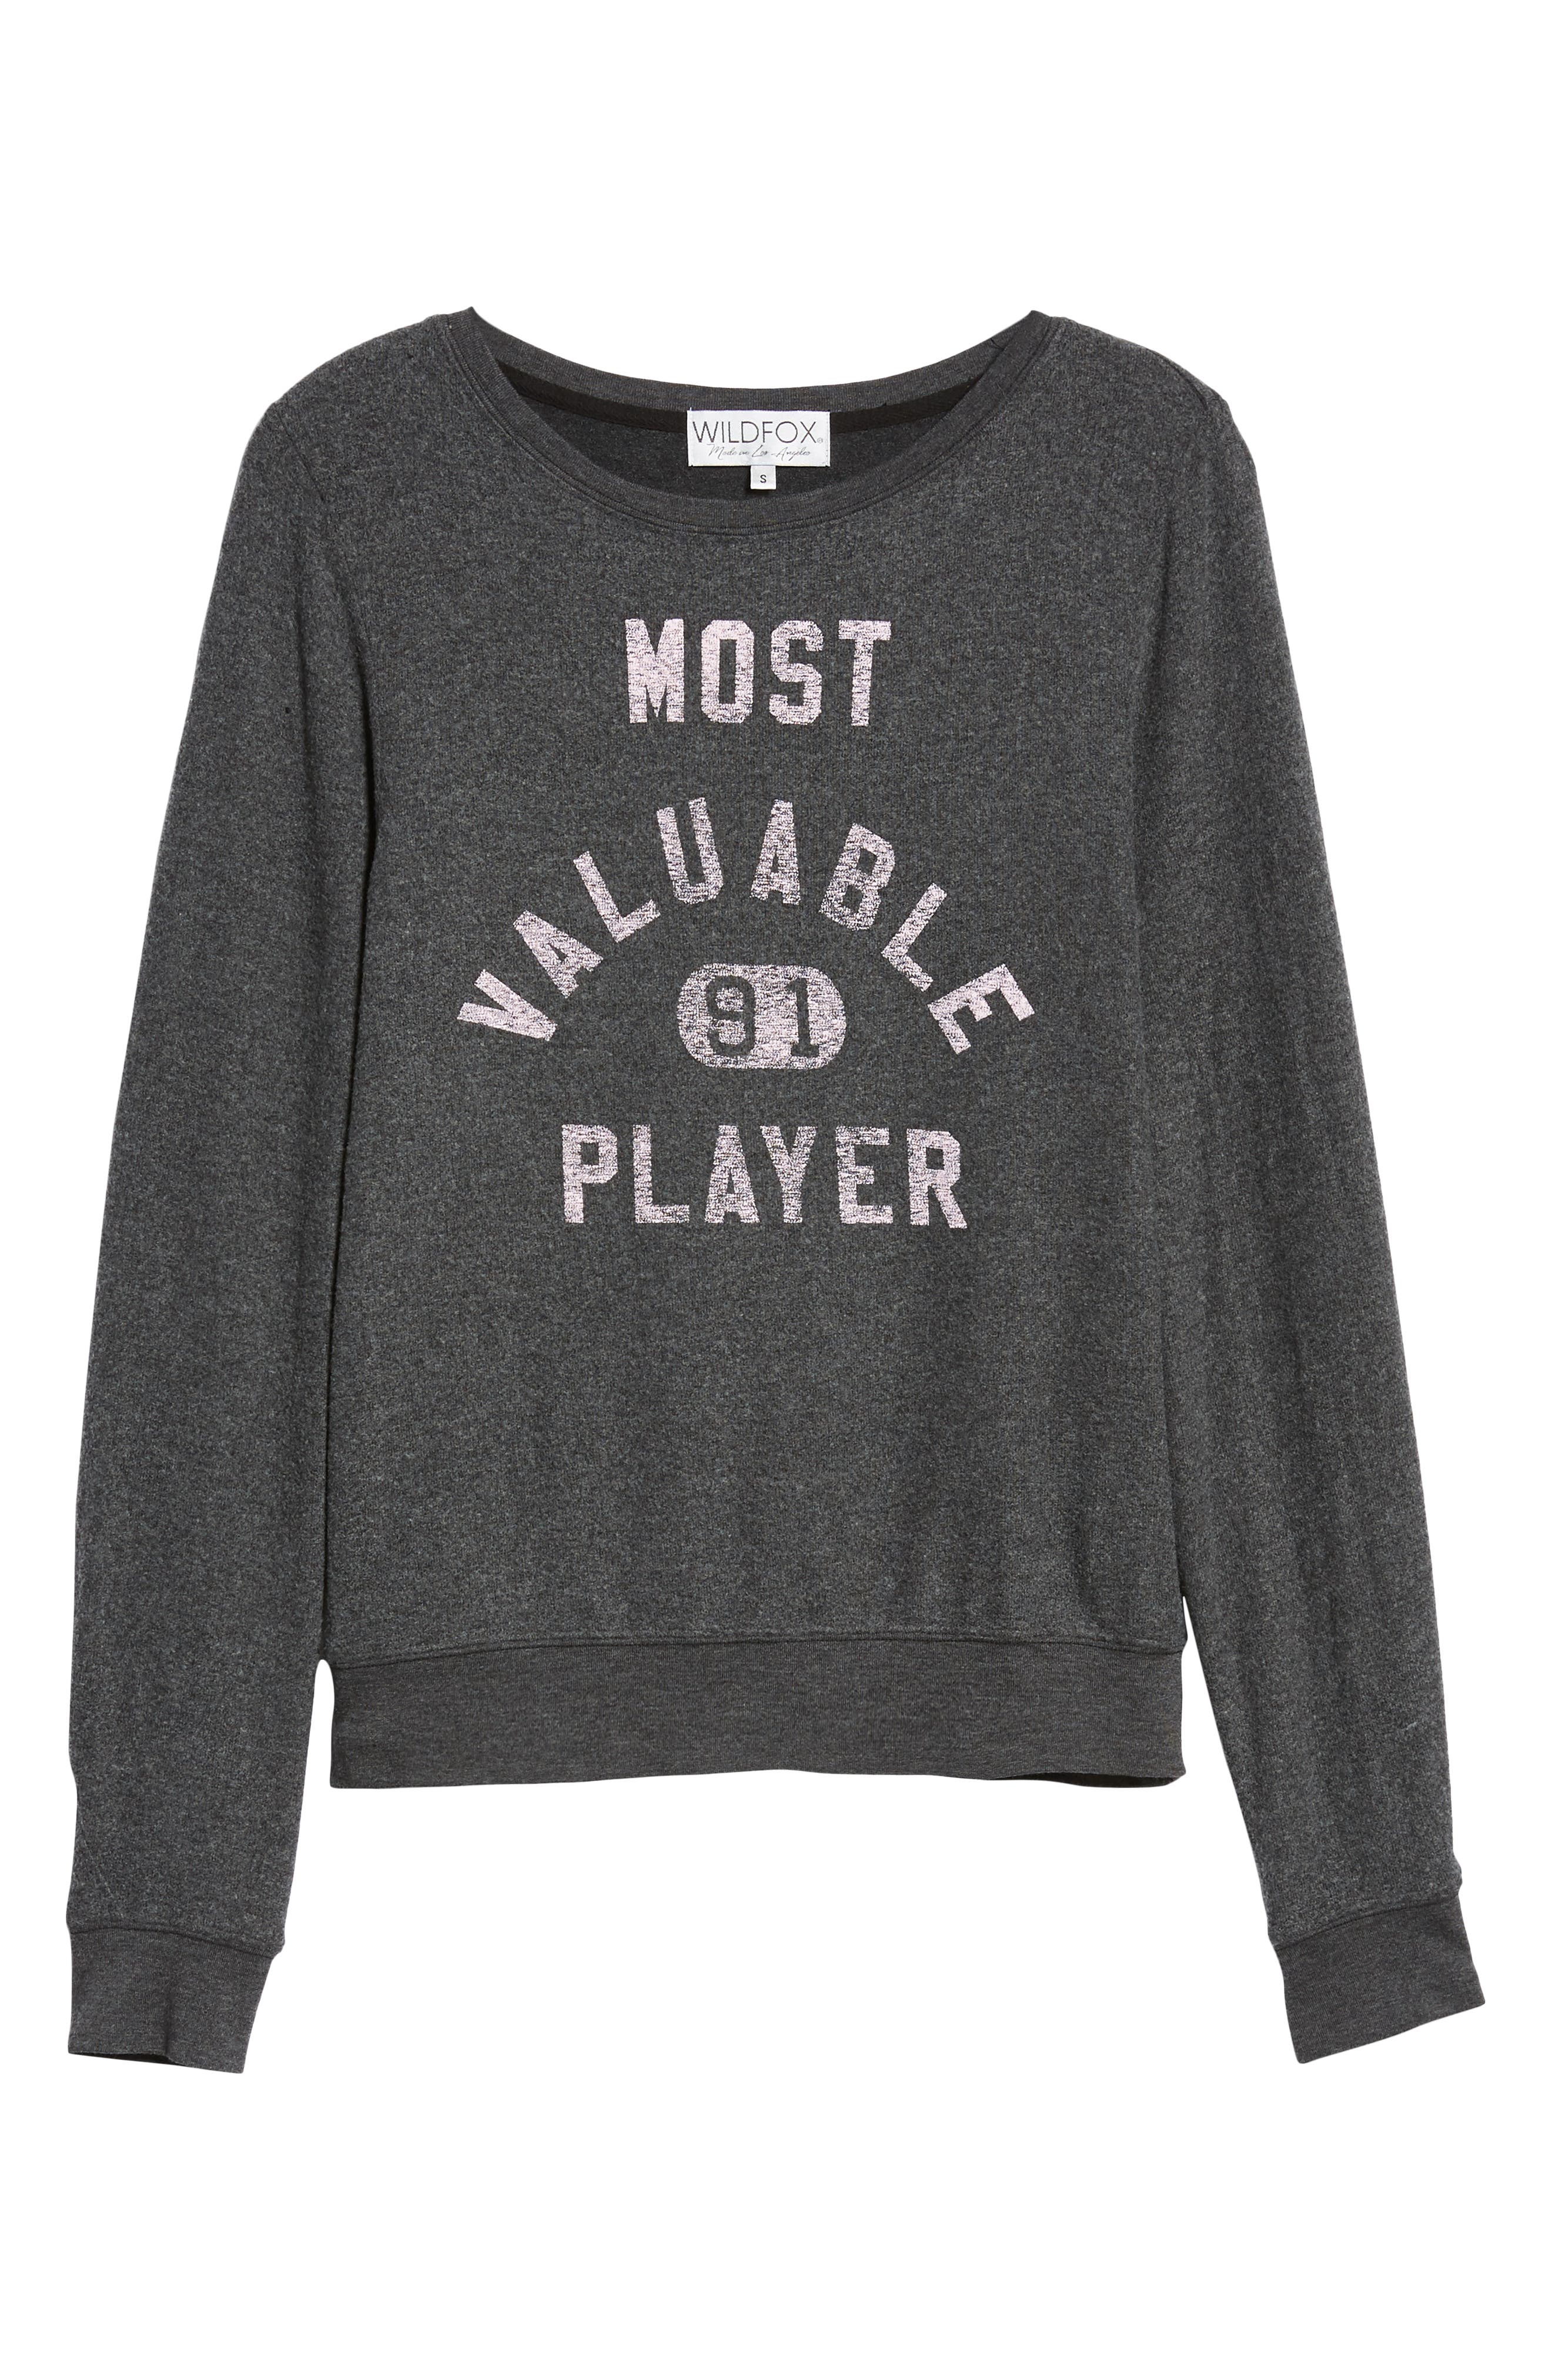 Most Valuable Player Baggy Beach Jumper Sweatshirt,                             Alternate thumbnail 6, color,                             002